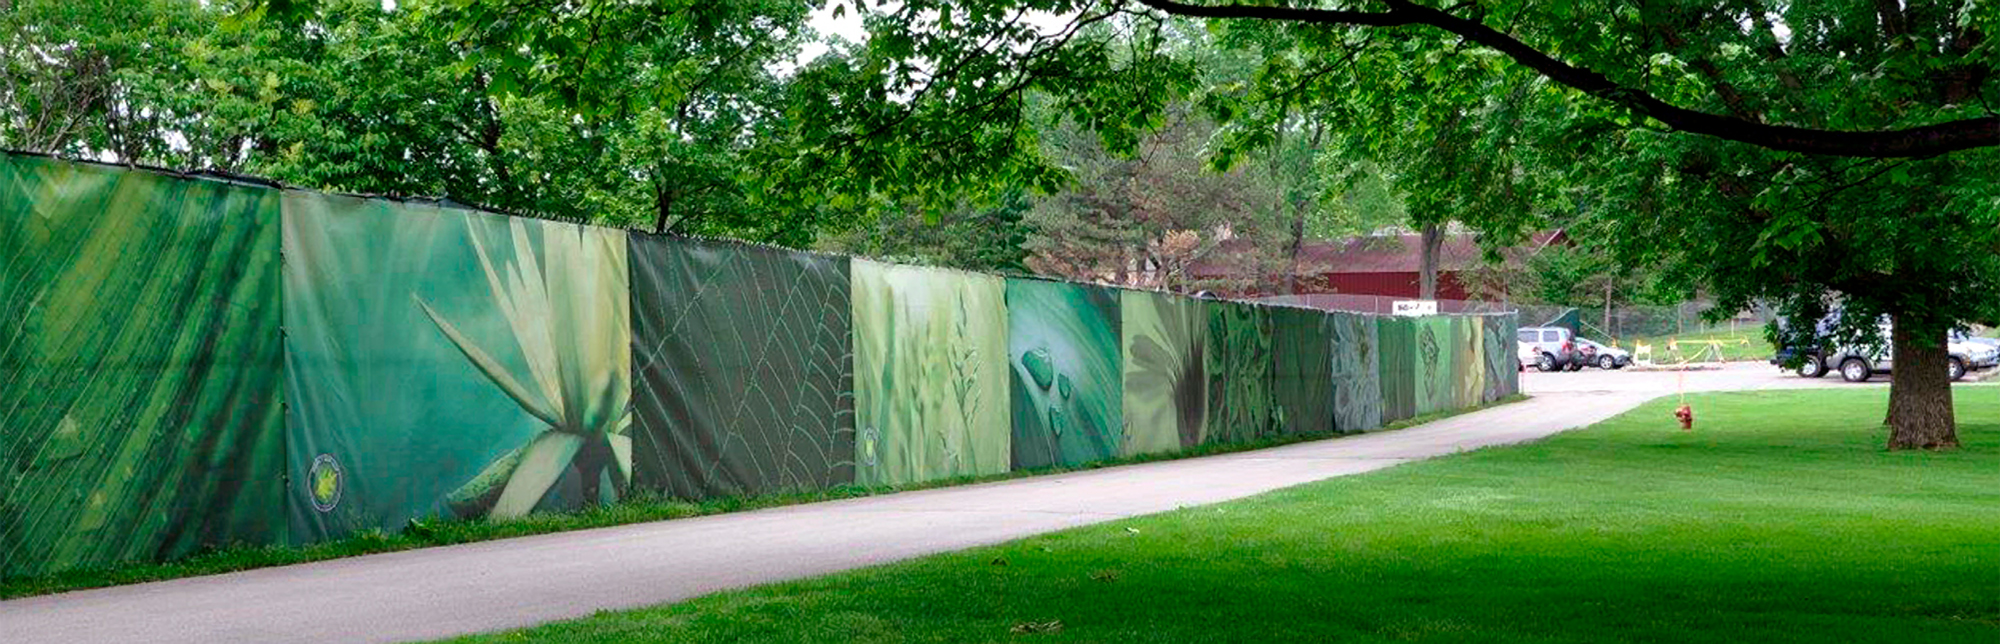 Forward Design Environmental Graphics_DSC_1328-Cropped 2000px.jpg